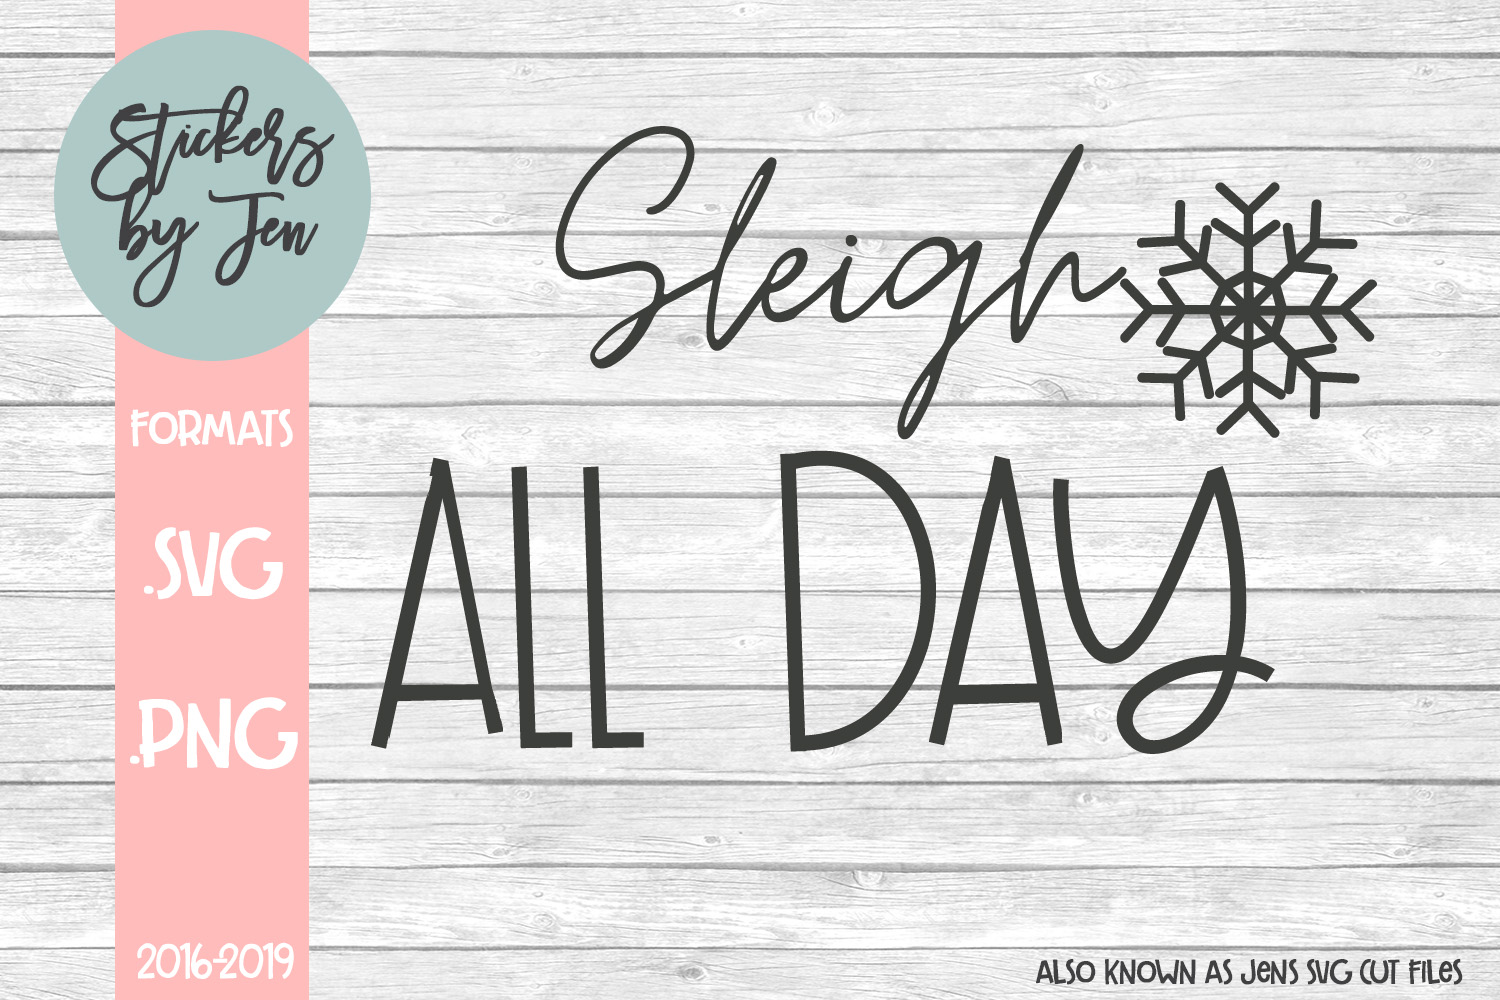 Sleigh All Day Svg Graphic By Stickers By Jennifer Creative